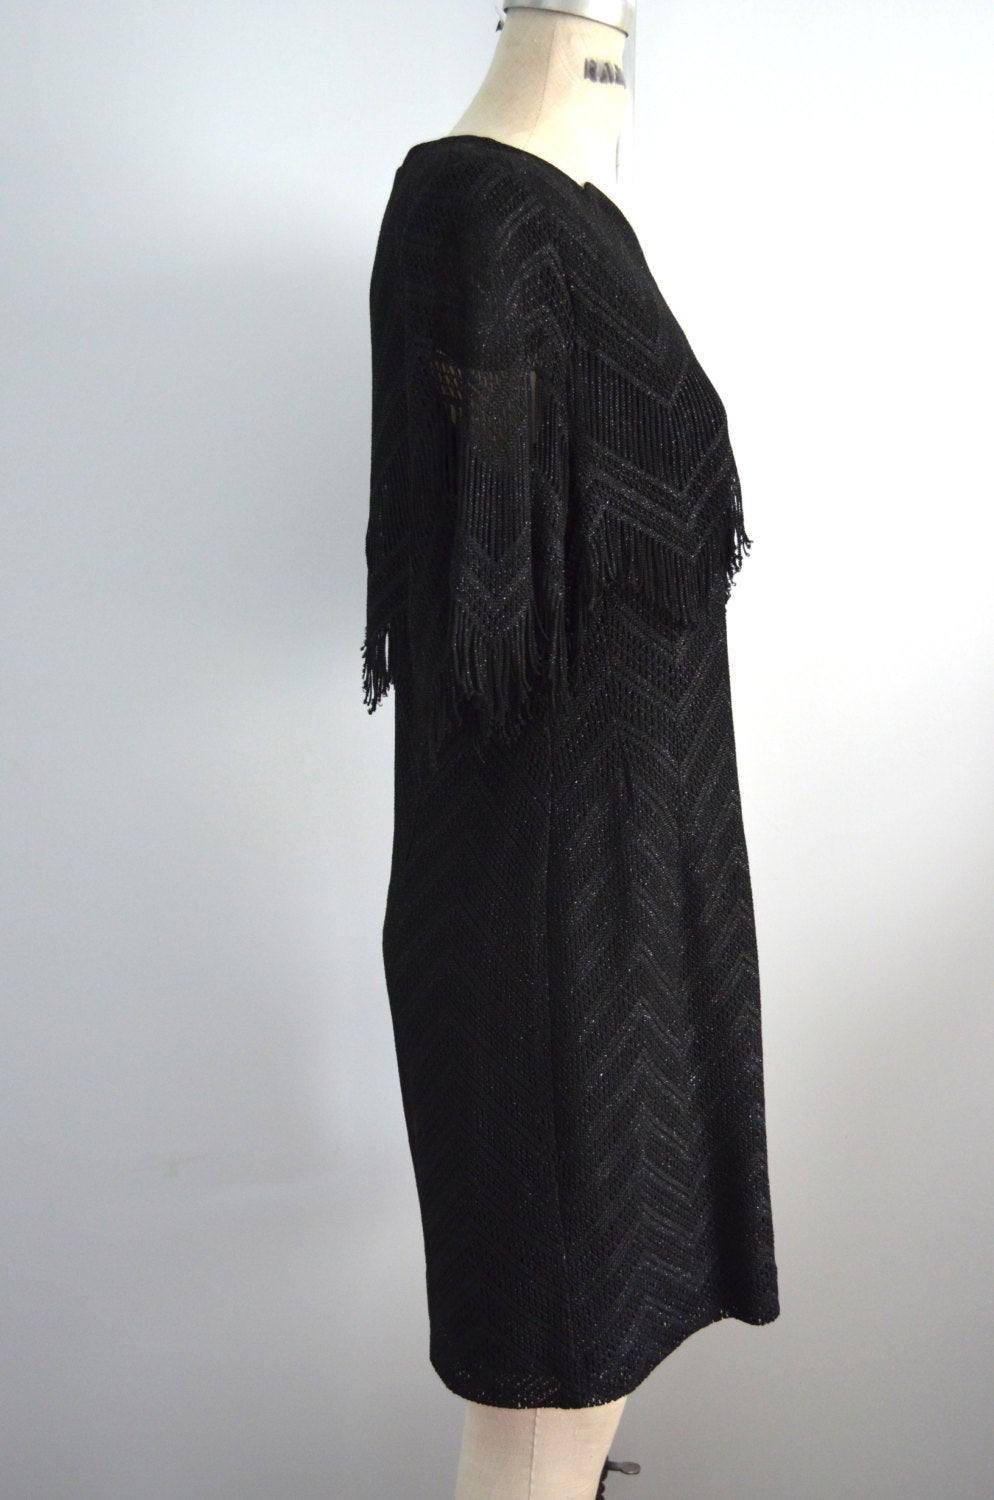 Great Gatsy Damianou Flapper Dress In Black Lace Fringe/Black Sequins Thread